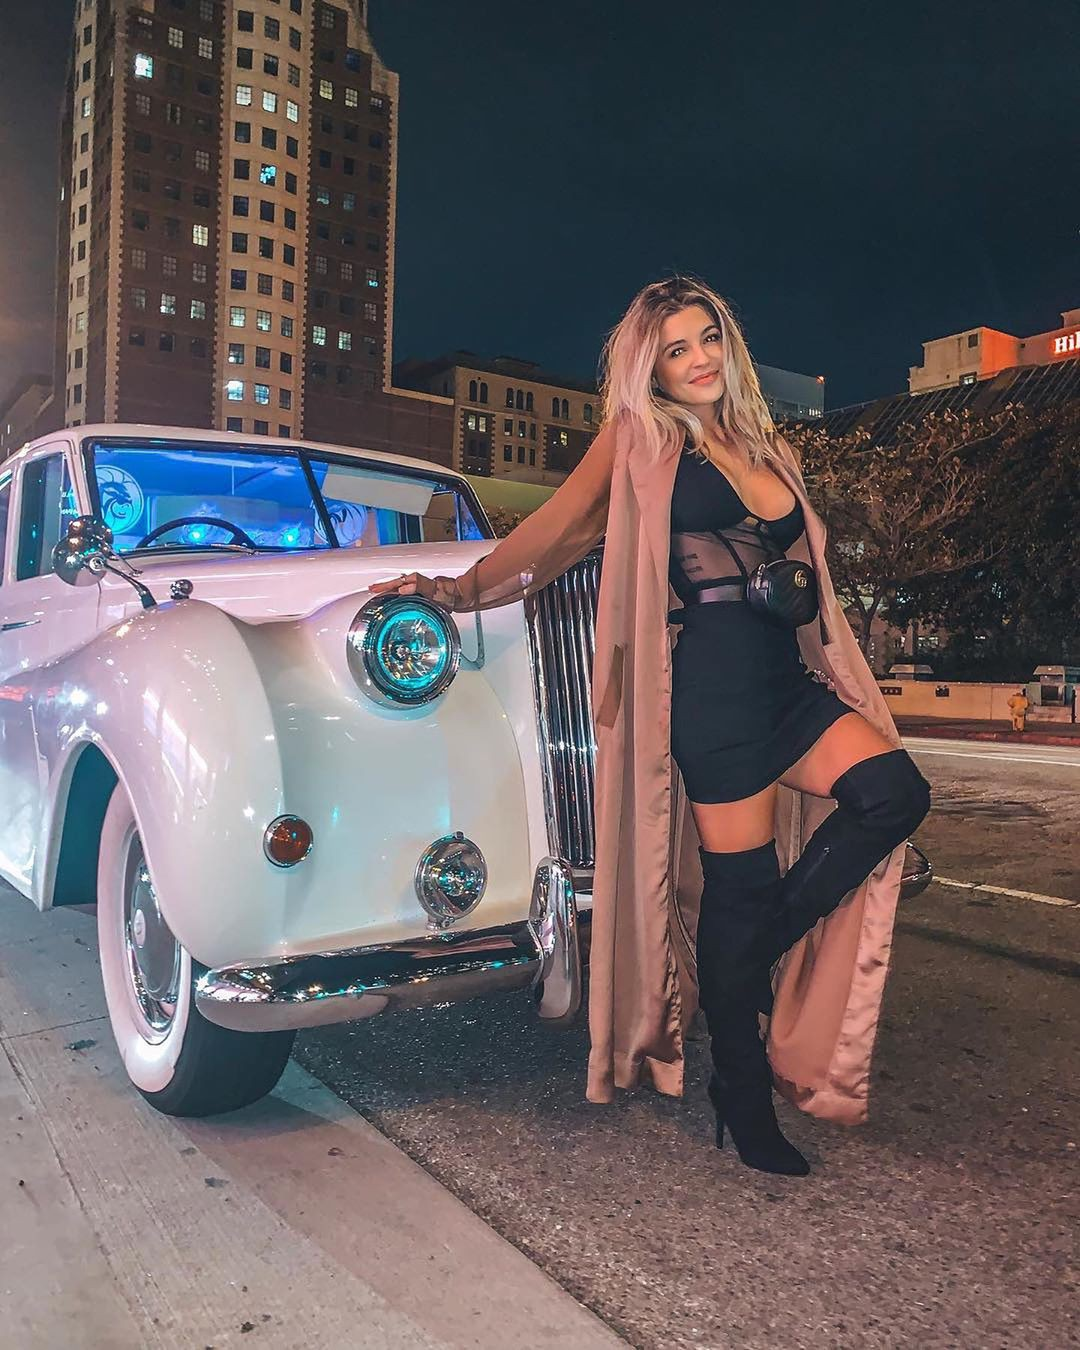 Nikki Blackketter blond hairs, costumes designs, motor vehicle